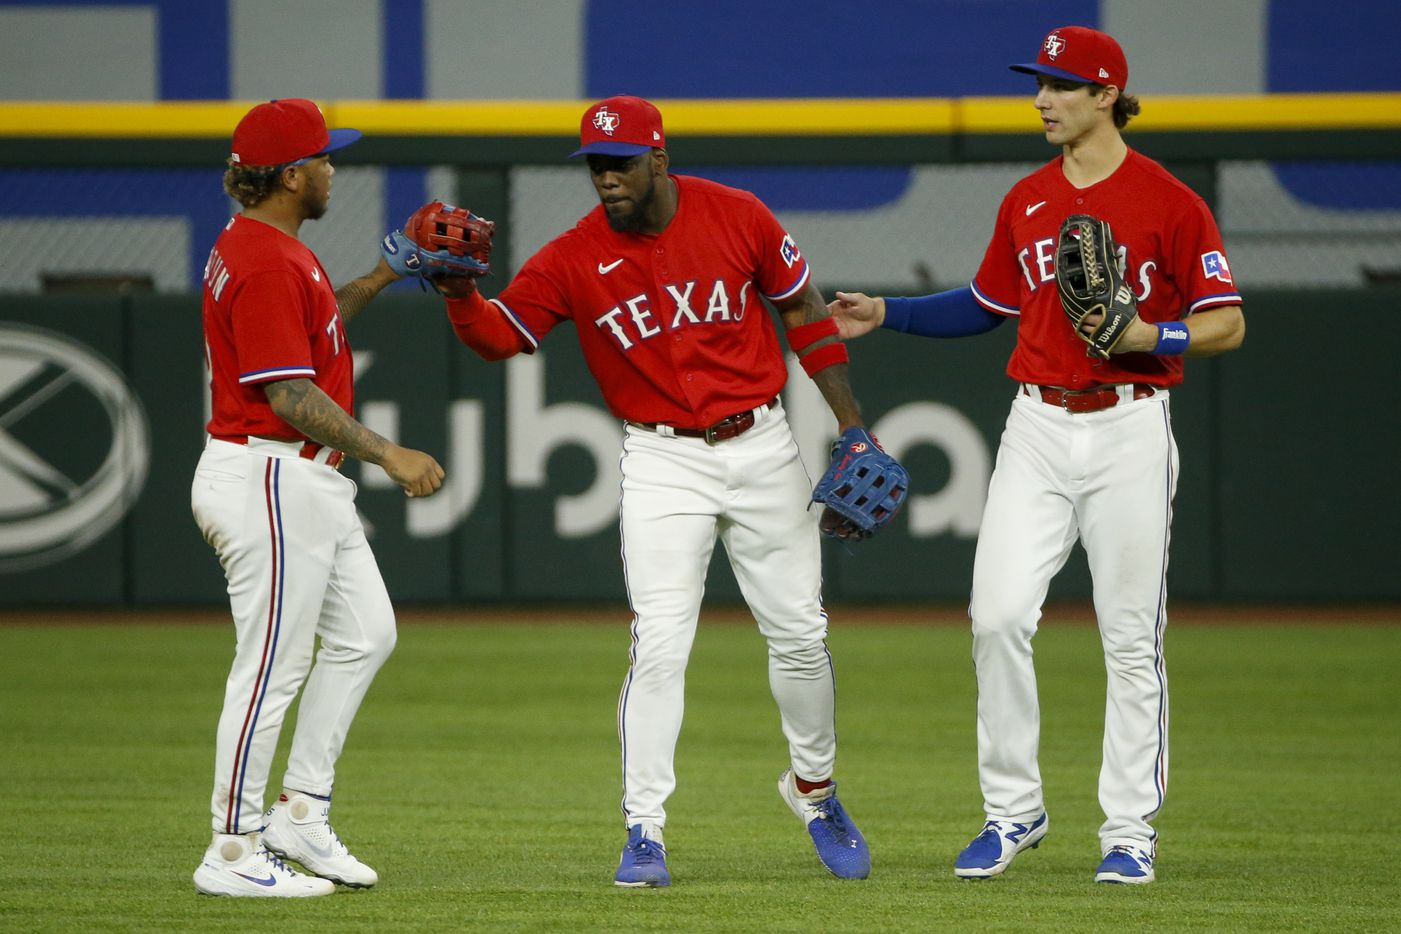 From left, Texas Rangers left fielder Willie Calhoun (5), Texas Rangers center fielder Adolis Garcia (53) and Texas Rangers right fielder Eli White (41) celebrate a 9-4 win over the Kansas City Royals at Globe Life Field on Friday, June 25, 2021, in Arlington. (Elias Valverde II/The Dallas Morning News)